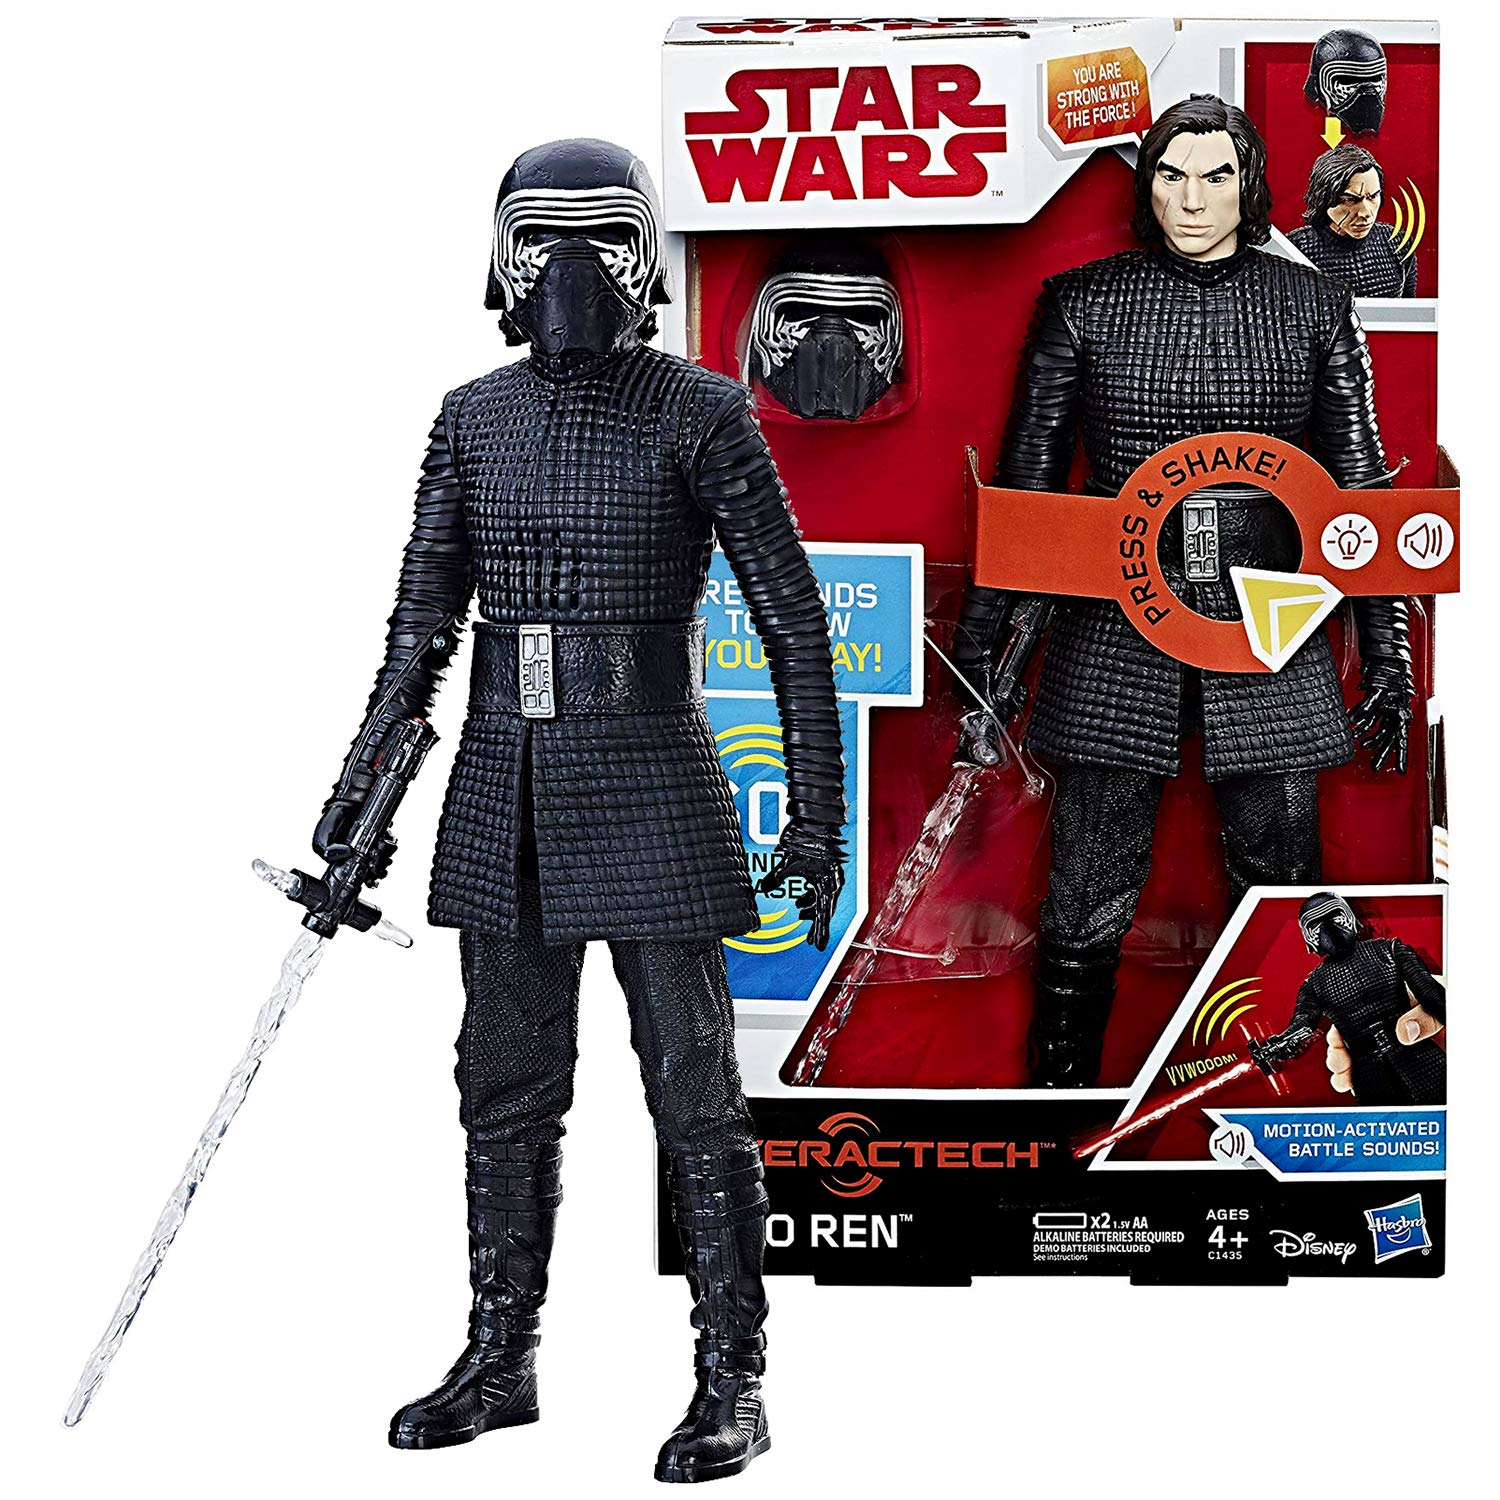 Kylo REN with Light-Up Lightsaber and Motion Activated Sounds Plus Removable Helmet HSB SW Star Wars Year 2017 The Last Jedi Series 12 Inch Tall Interactech Electronic Figure